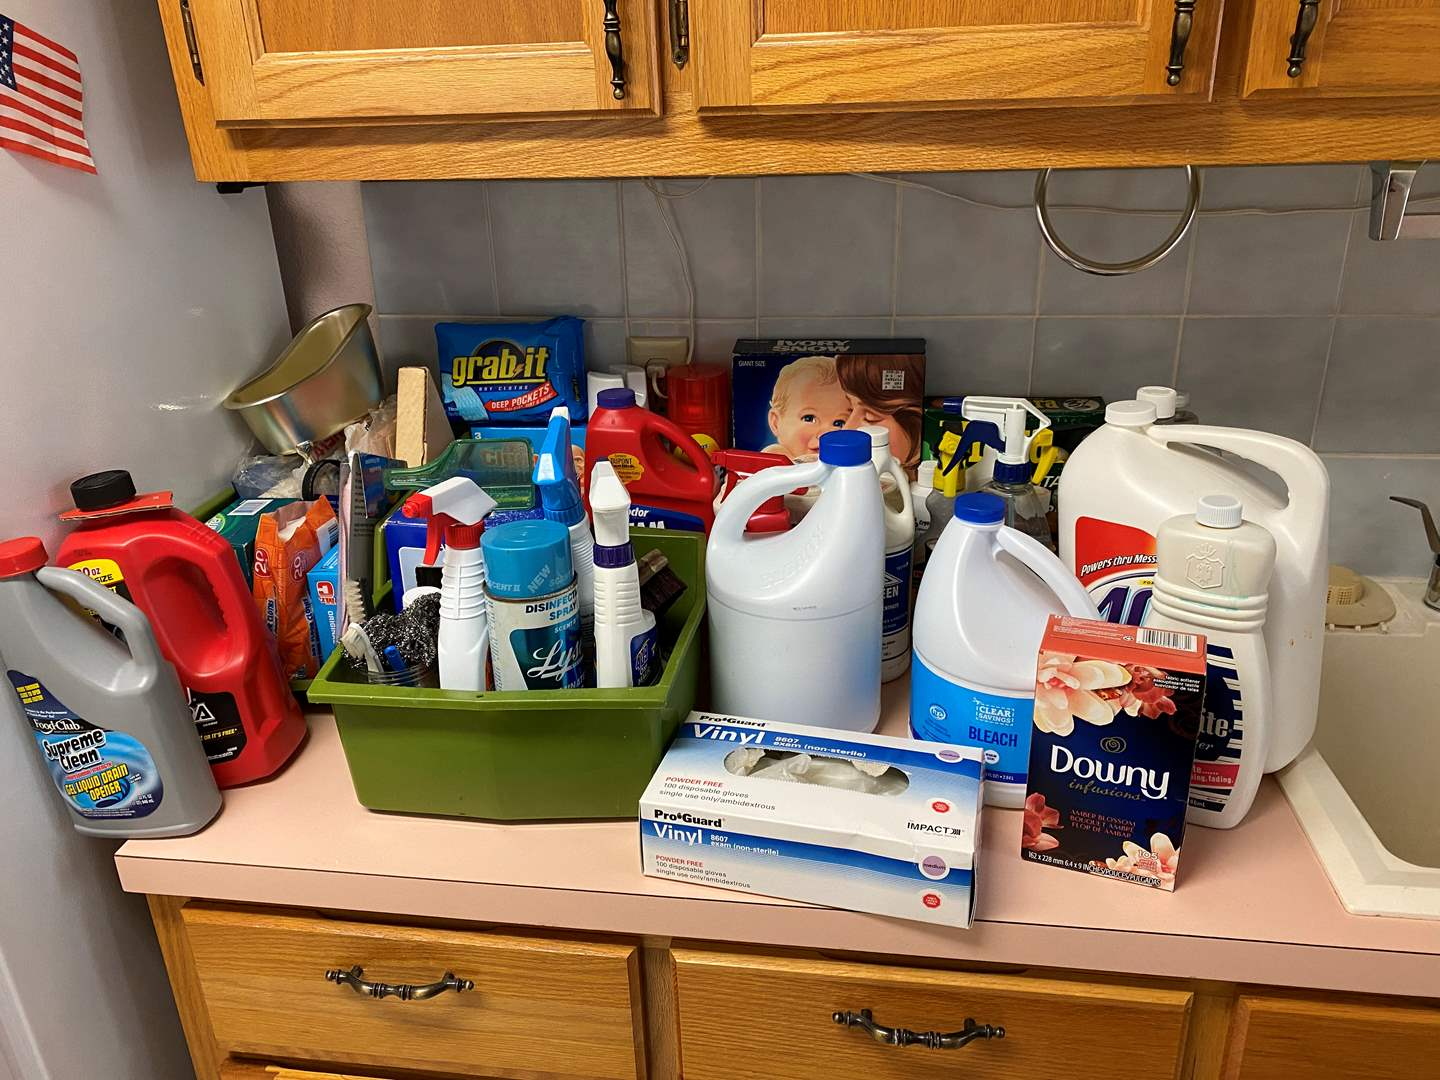 Lot # 121 - Household Chemicals & Cleaners - (Some Full, Some Half Full, Some Almost Empty) (main image)